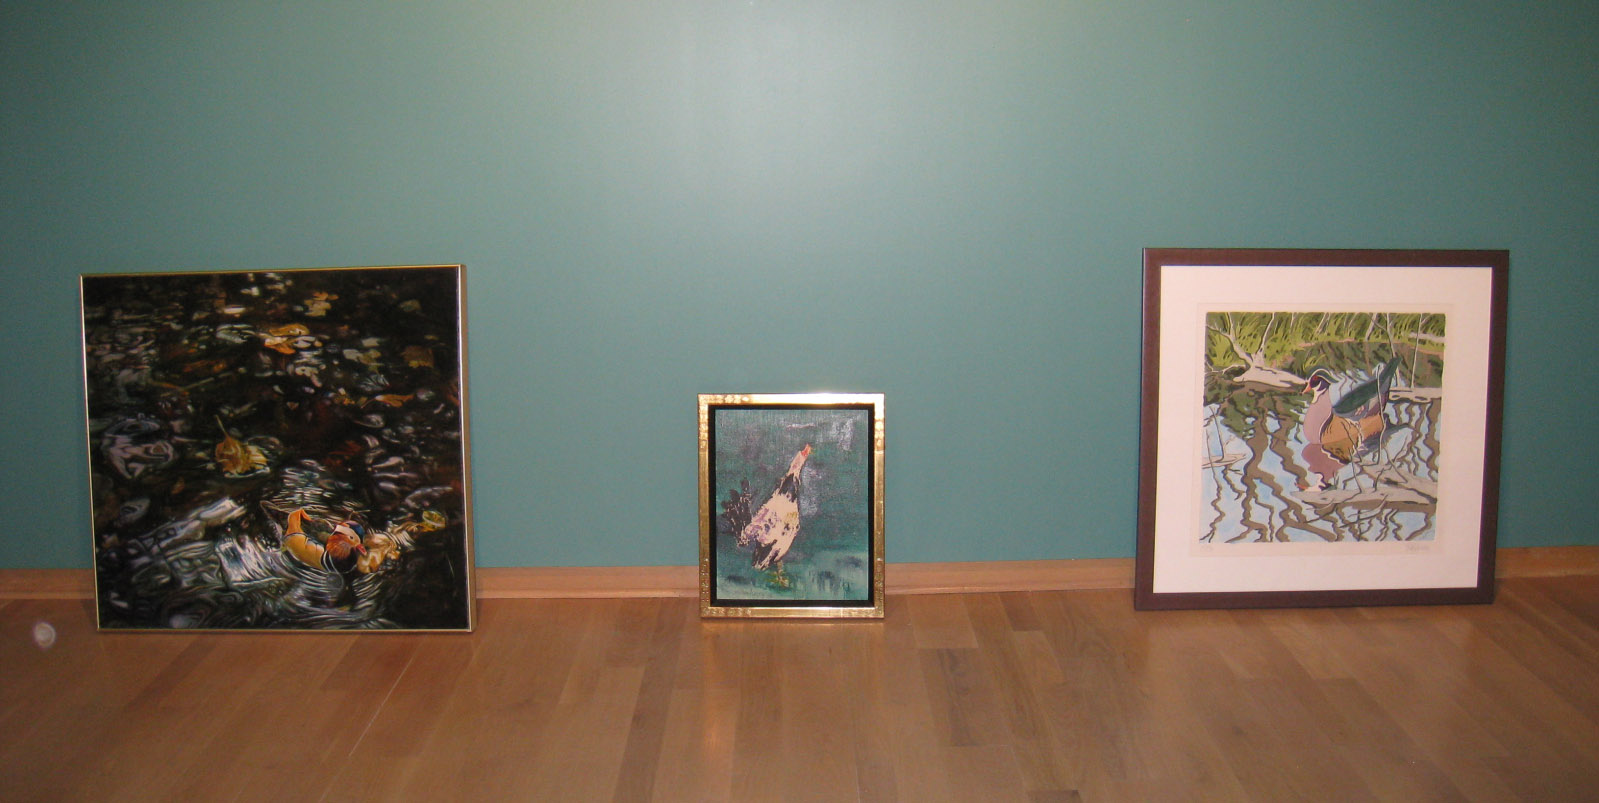 Gallery layout 2